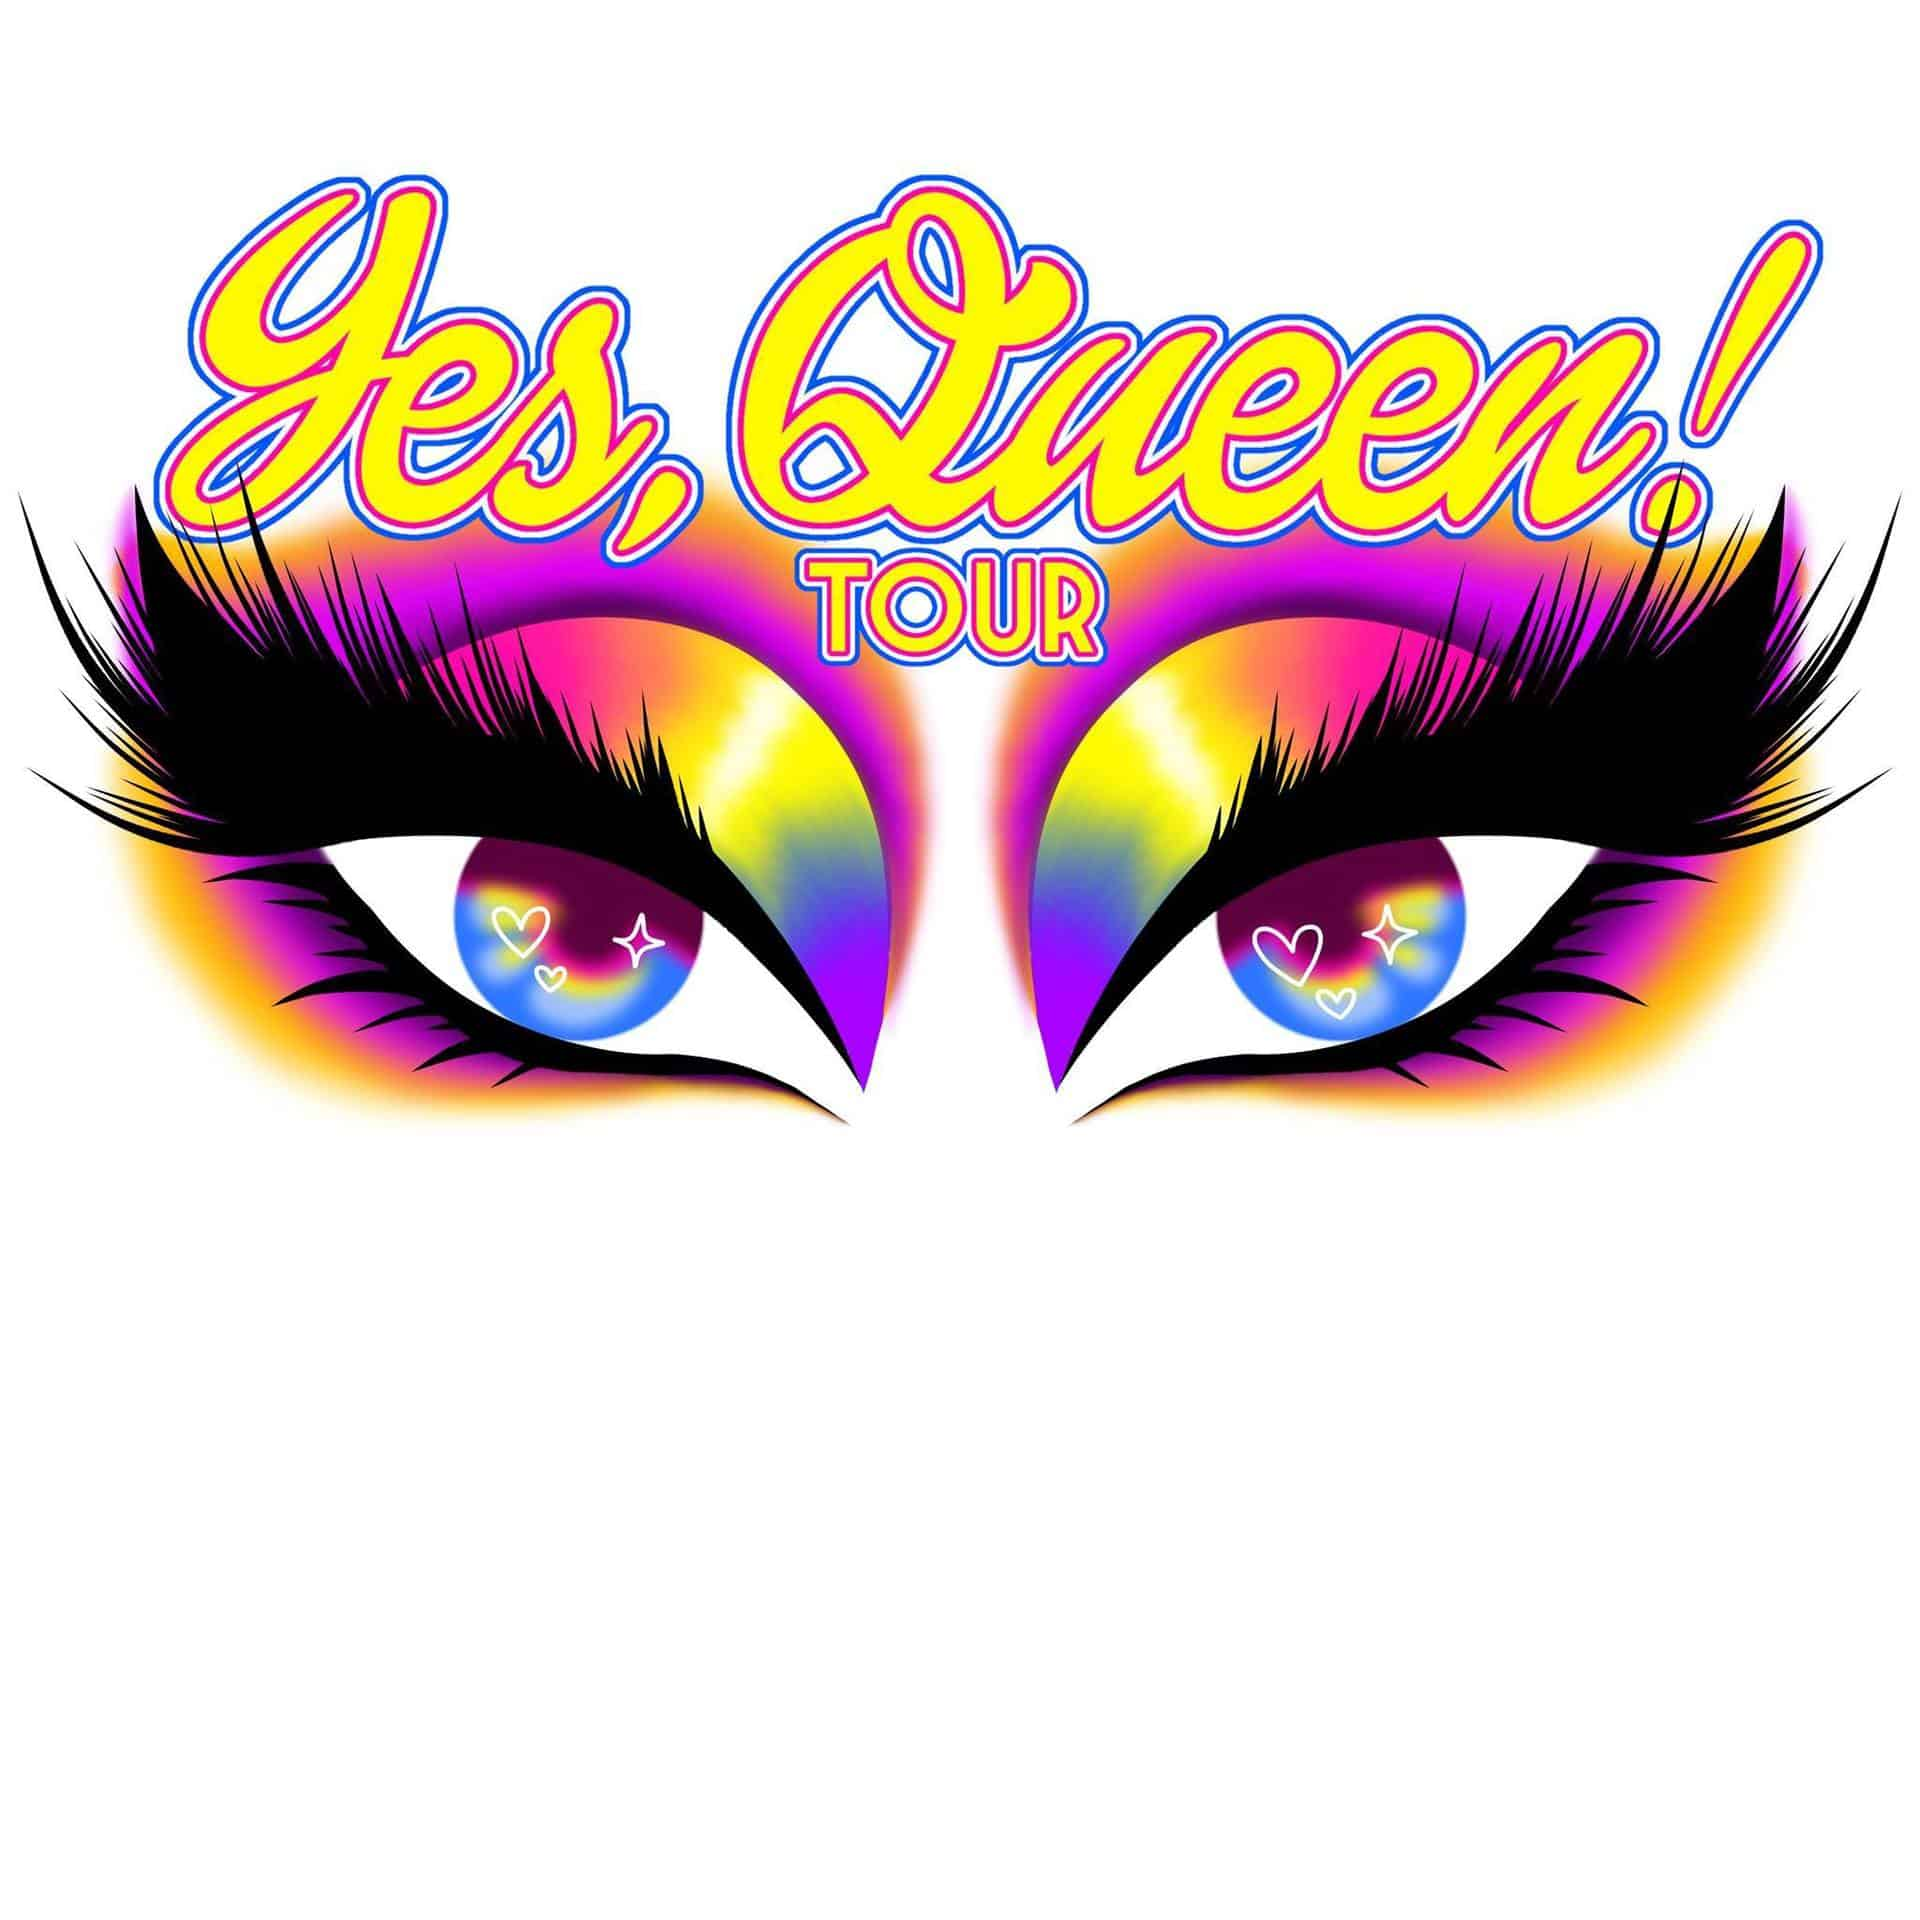 Yes, Queen! Tour